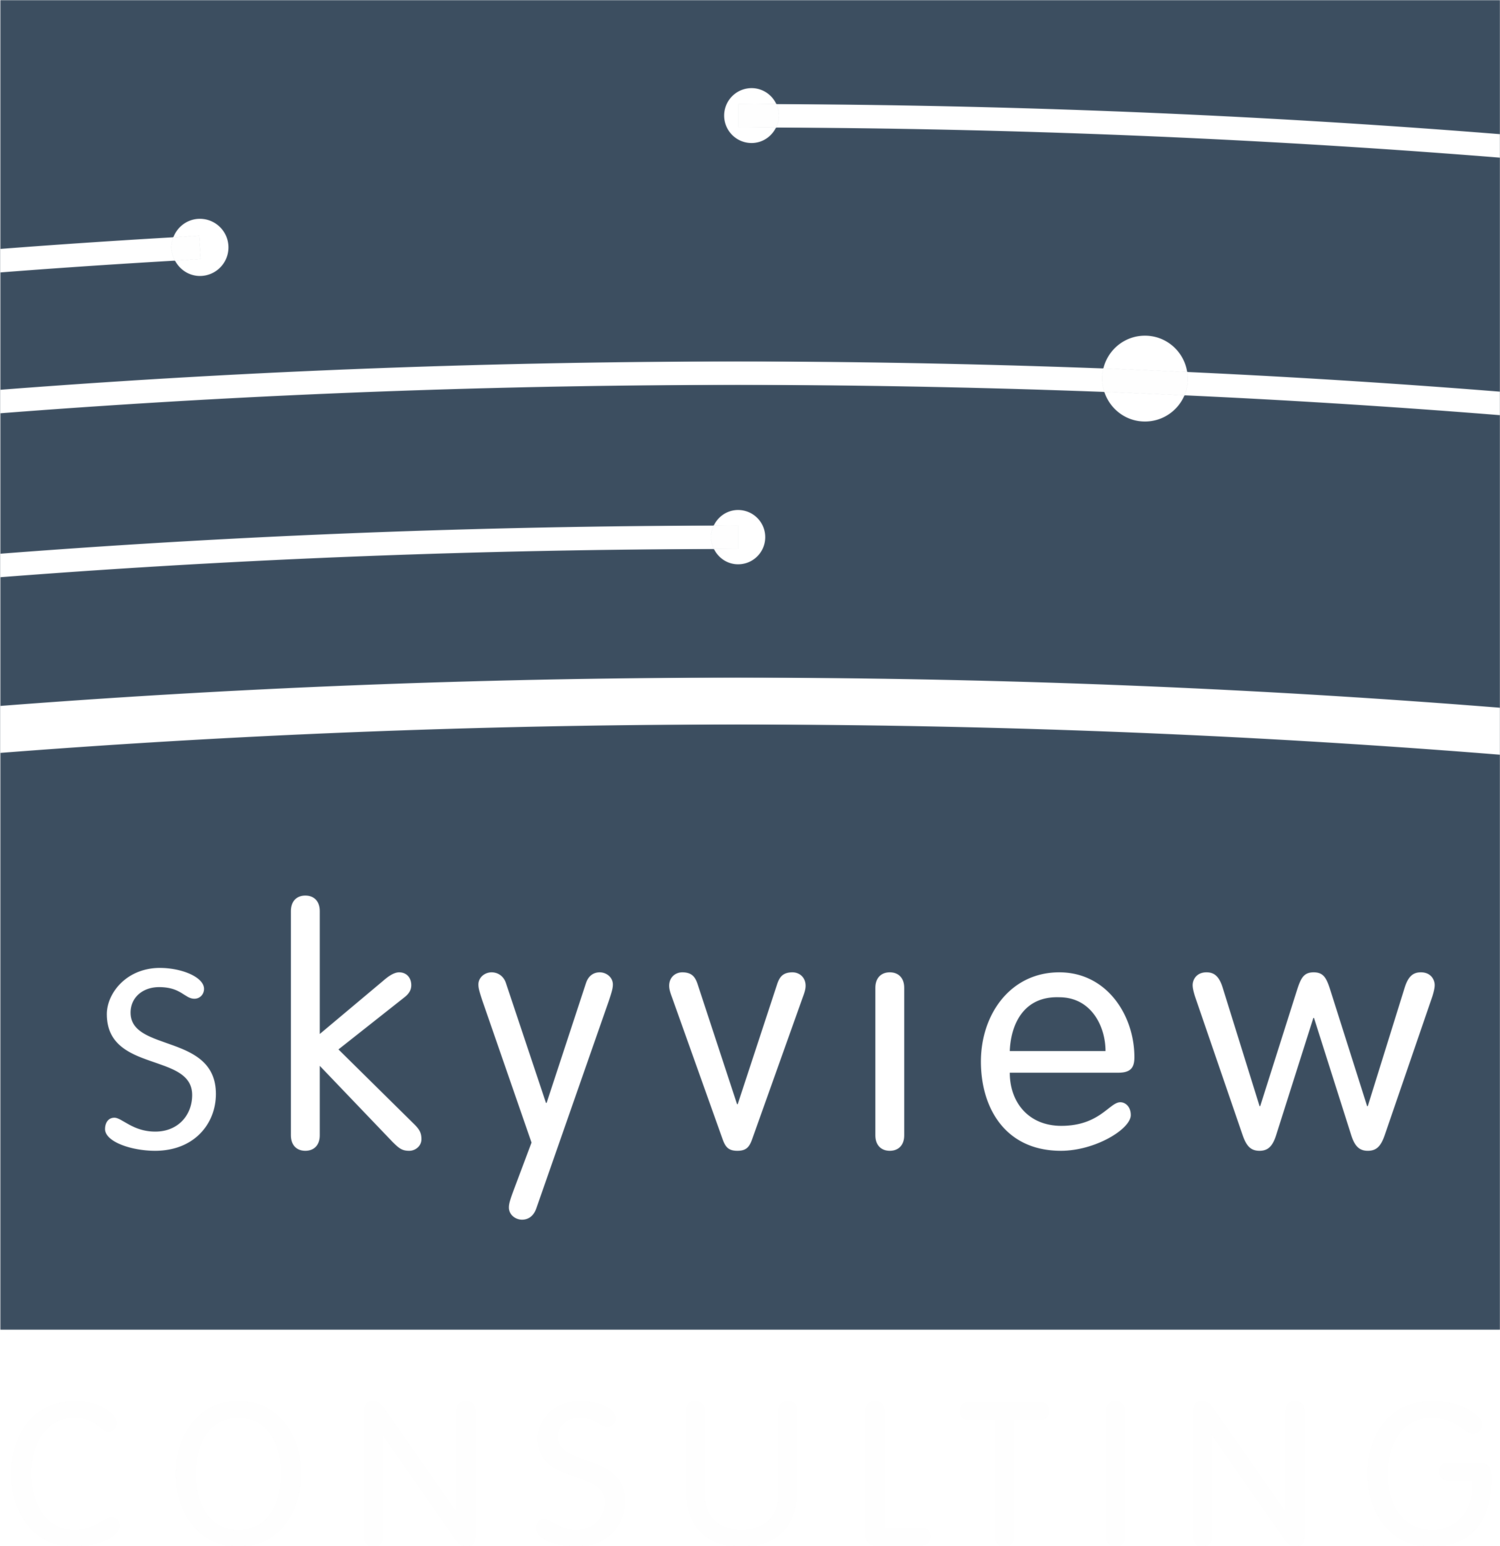 Skyview Consulting